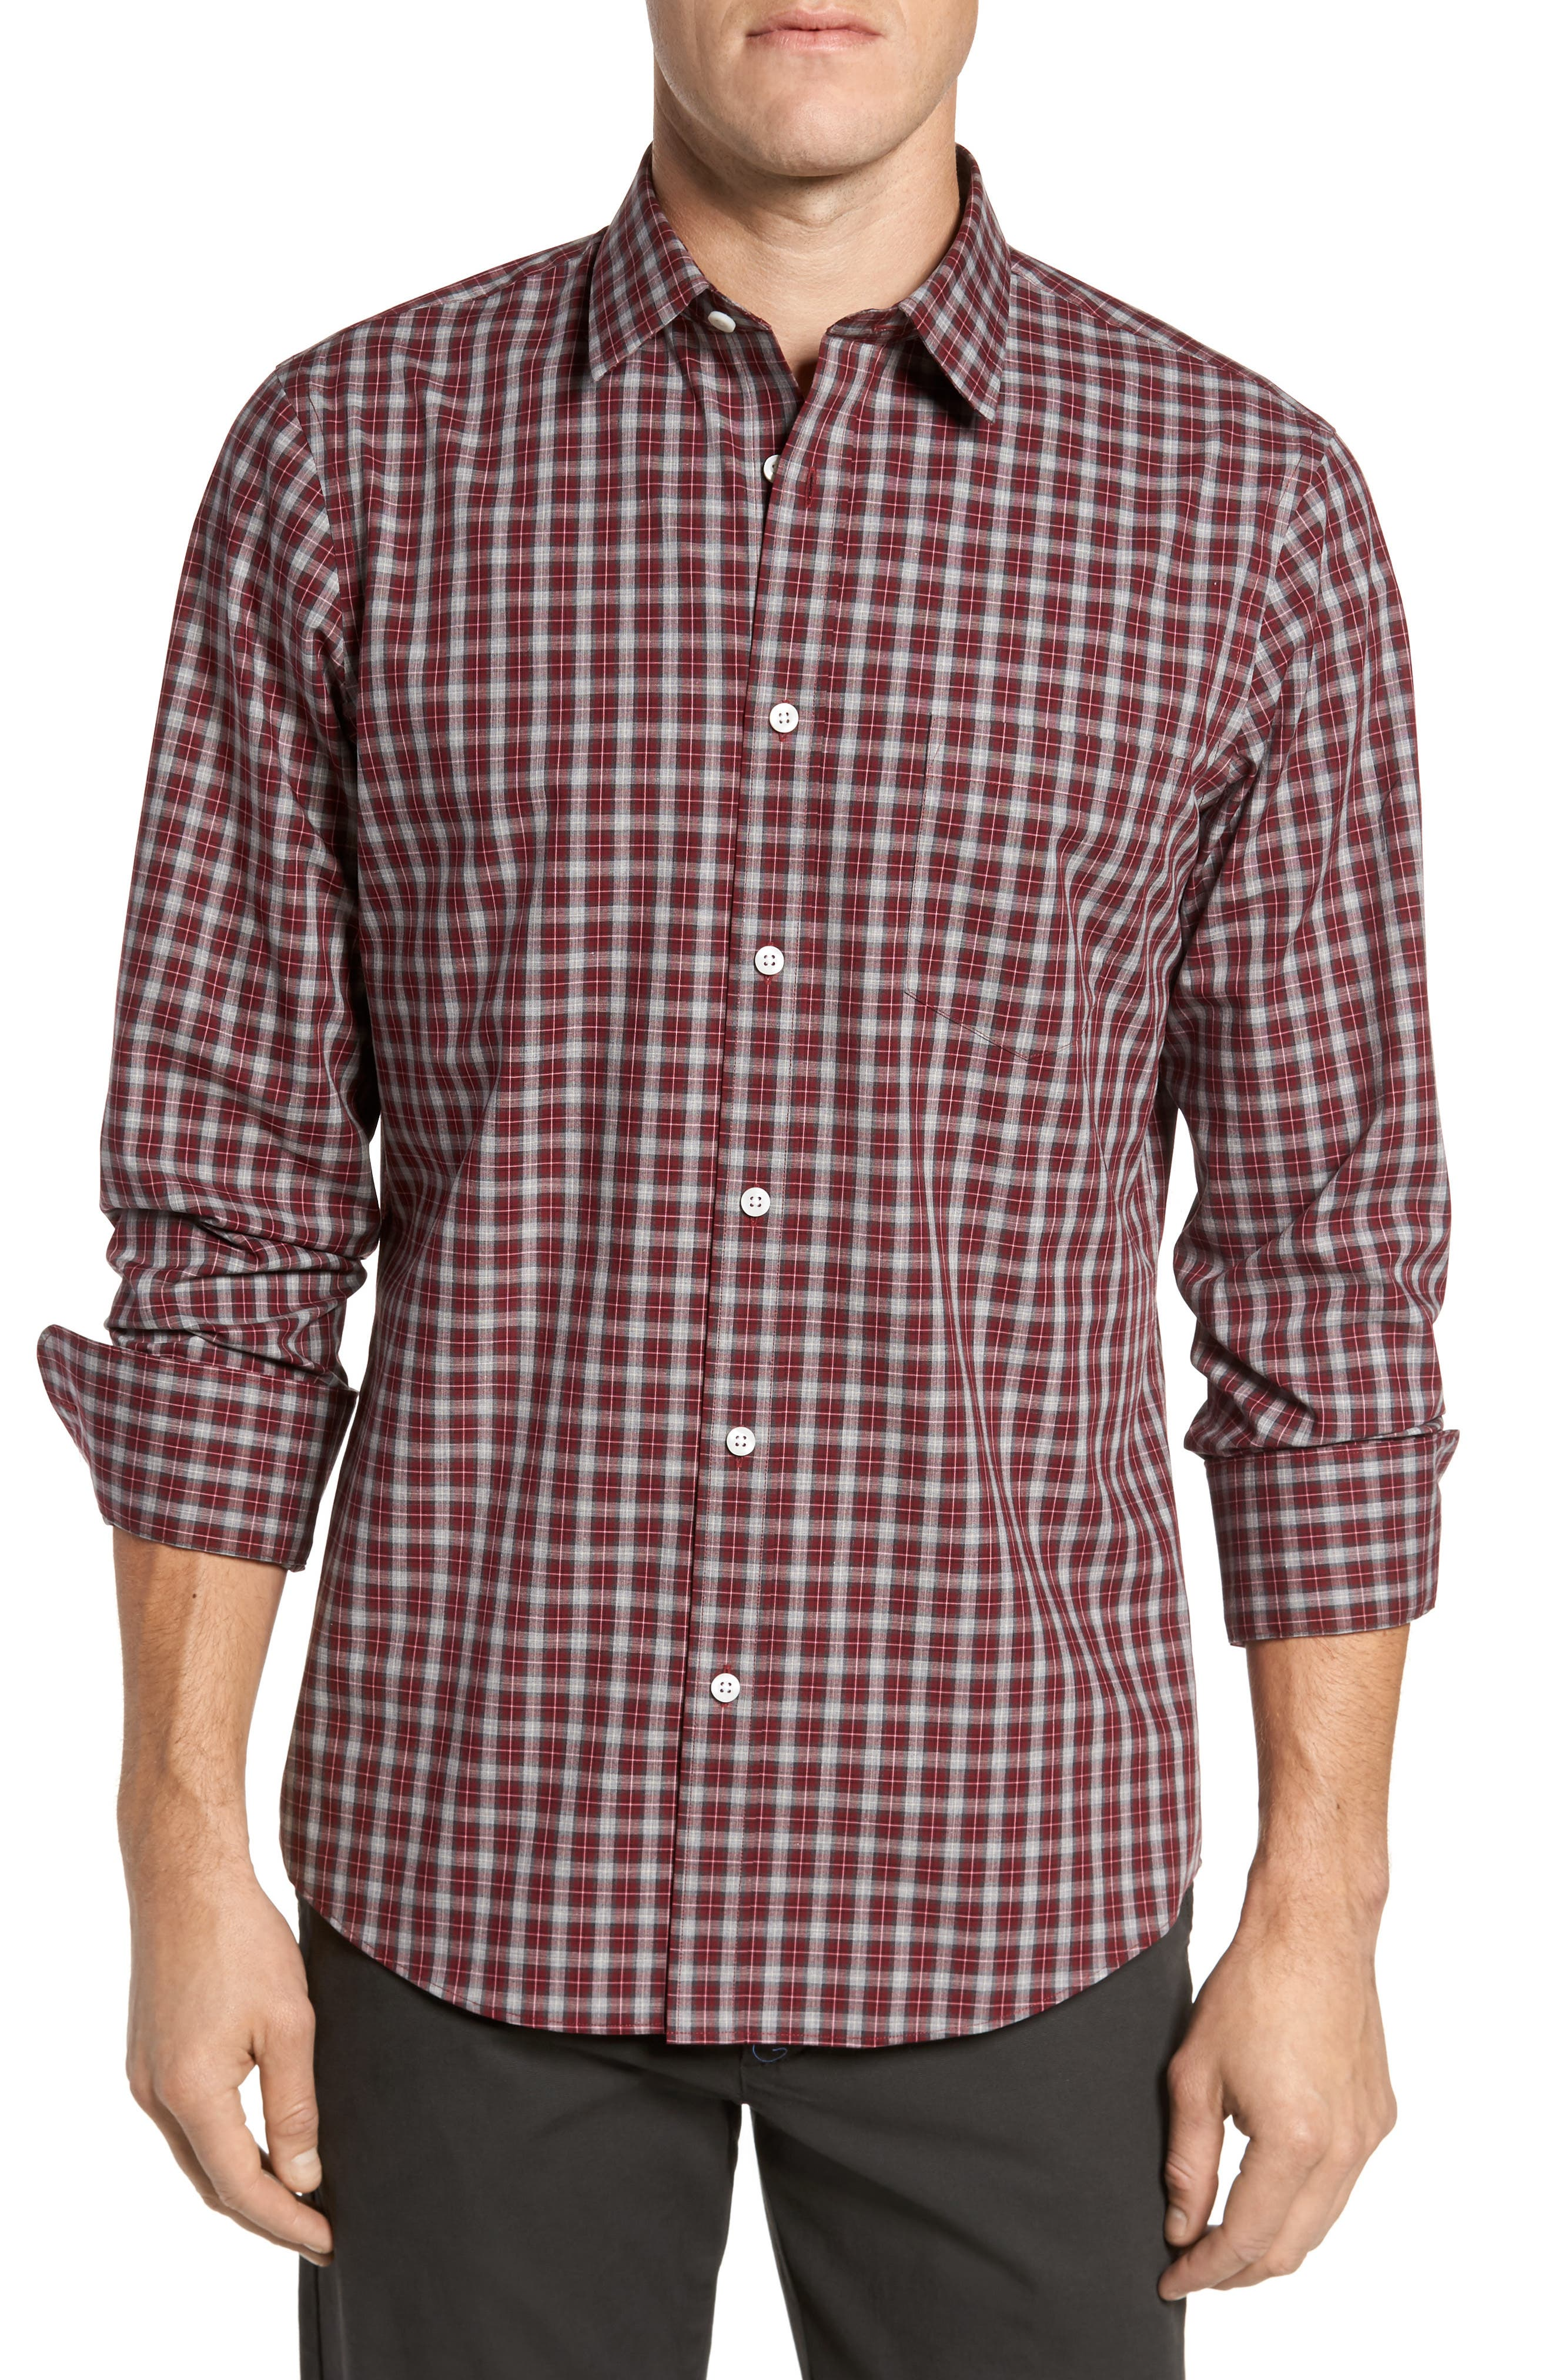 Nordstrom Men's Shop Regular Fit Non-Iron Check Sport Shirt